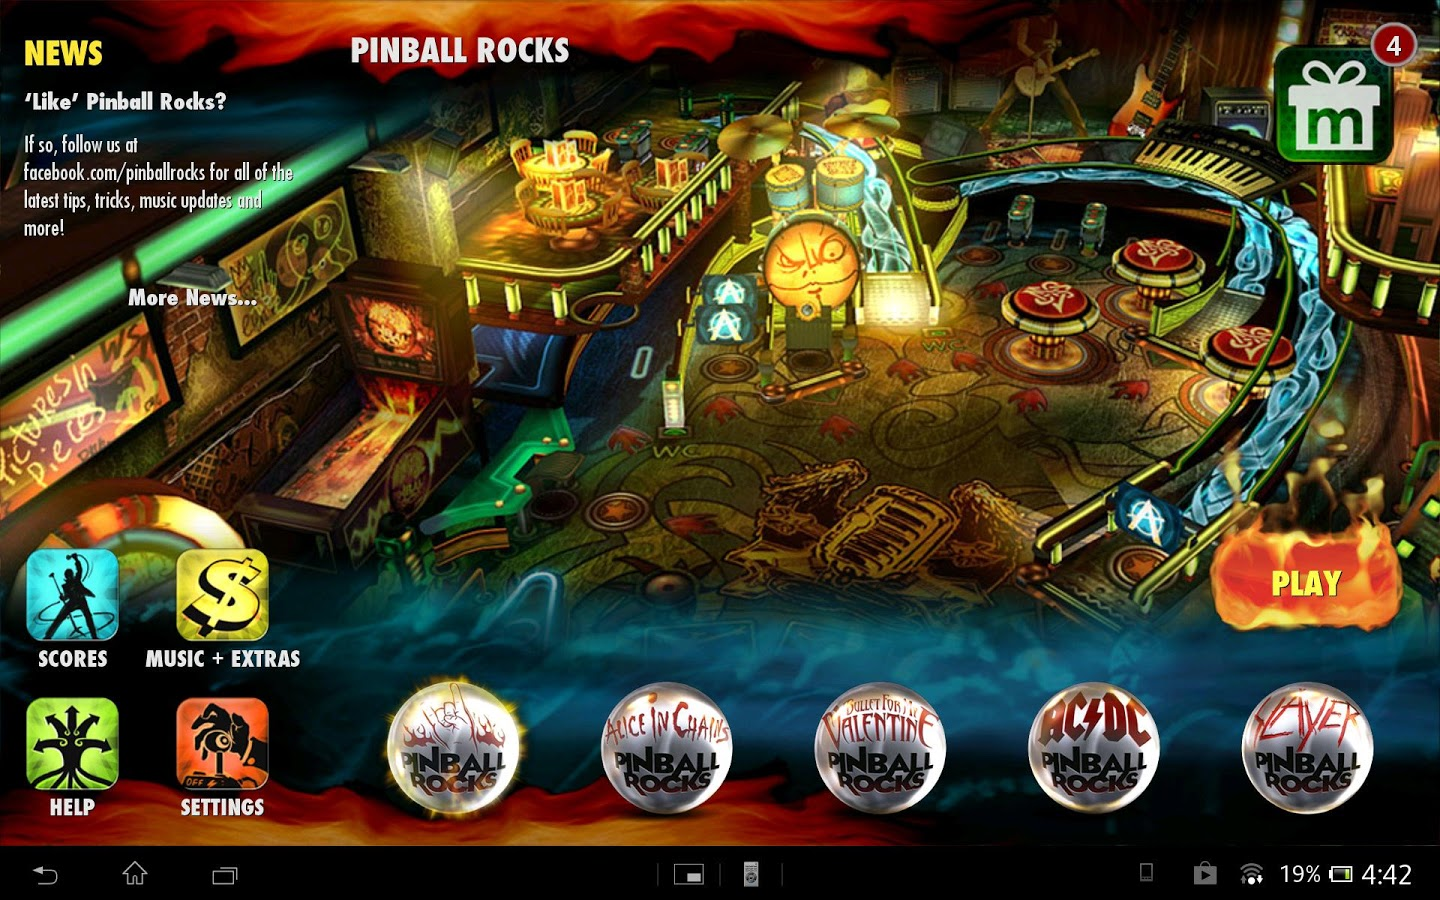 Descargar Pinball Rocks HD APK gratis